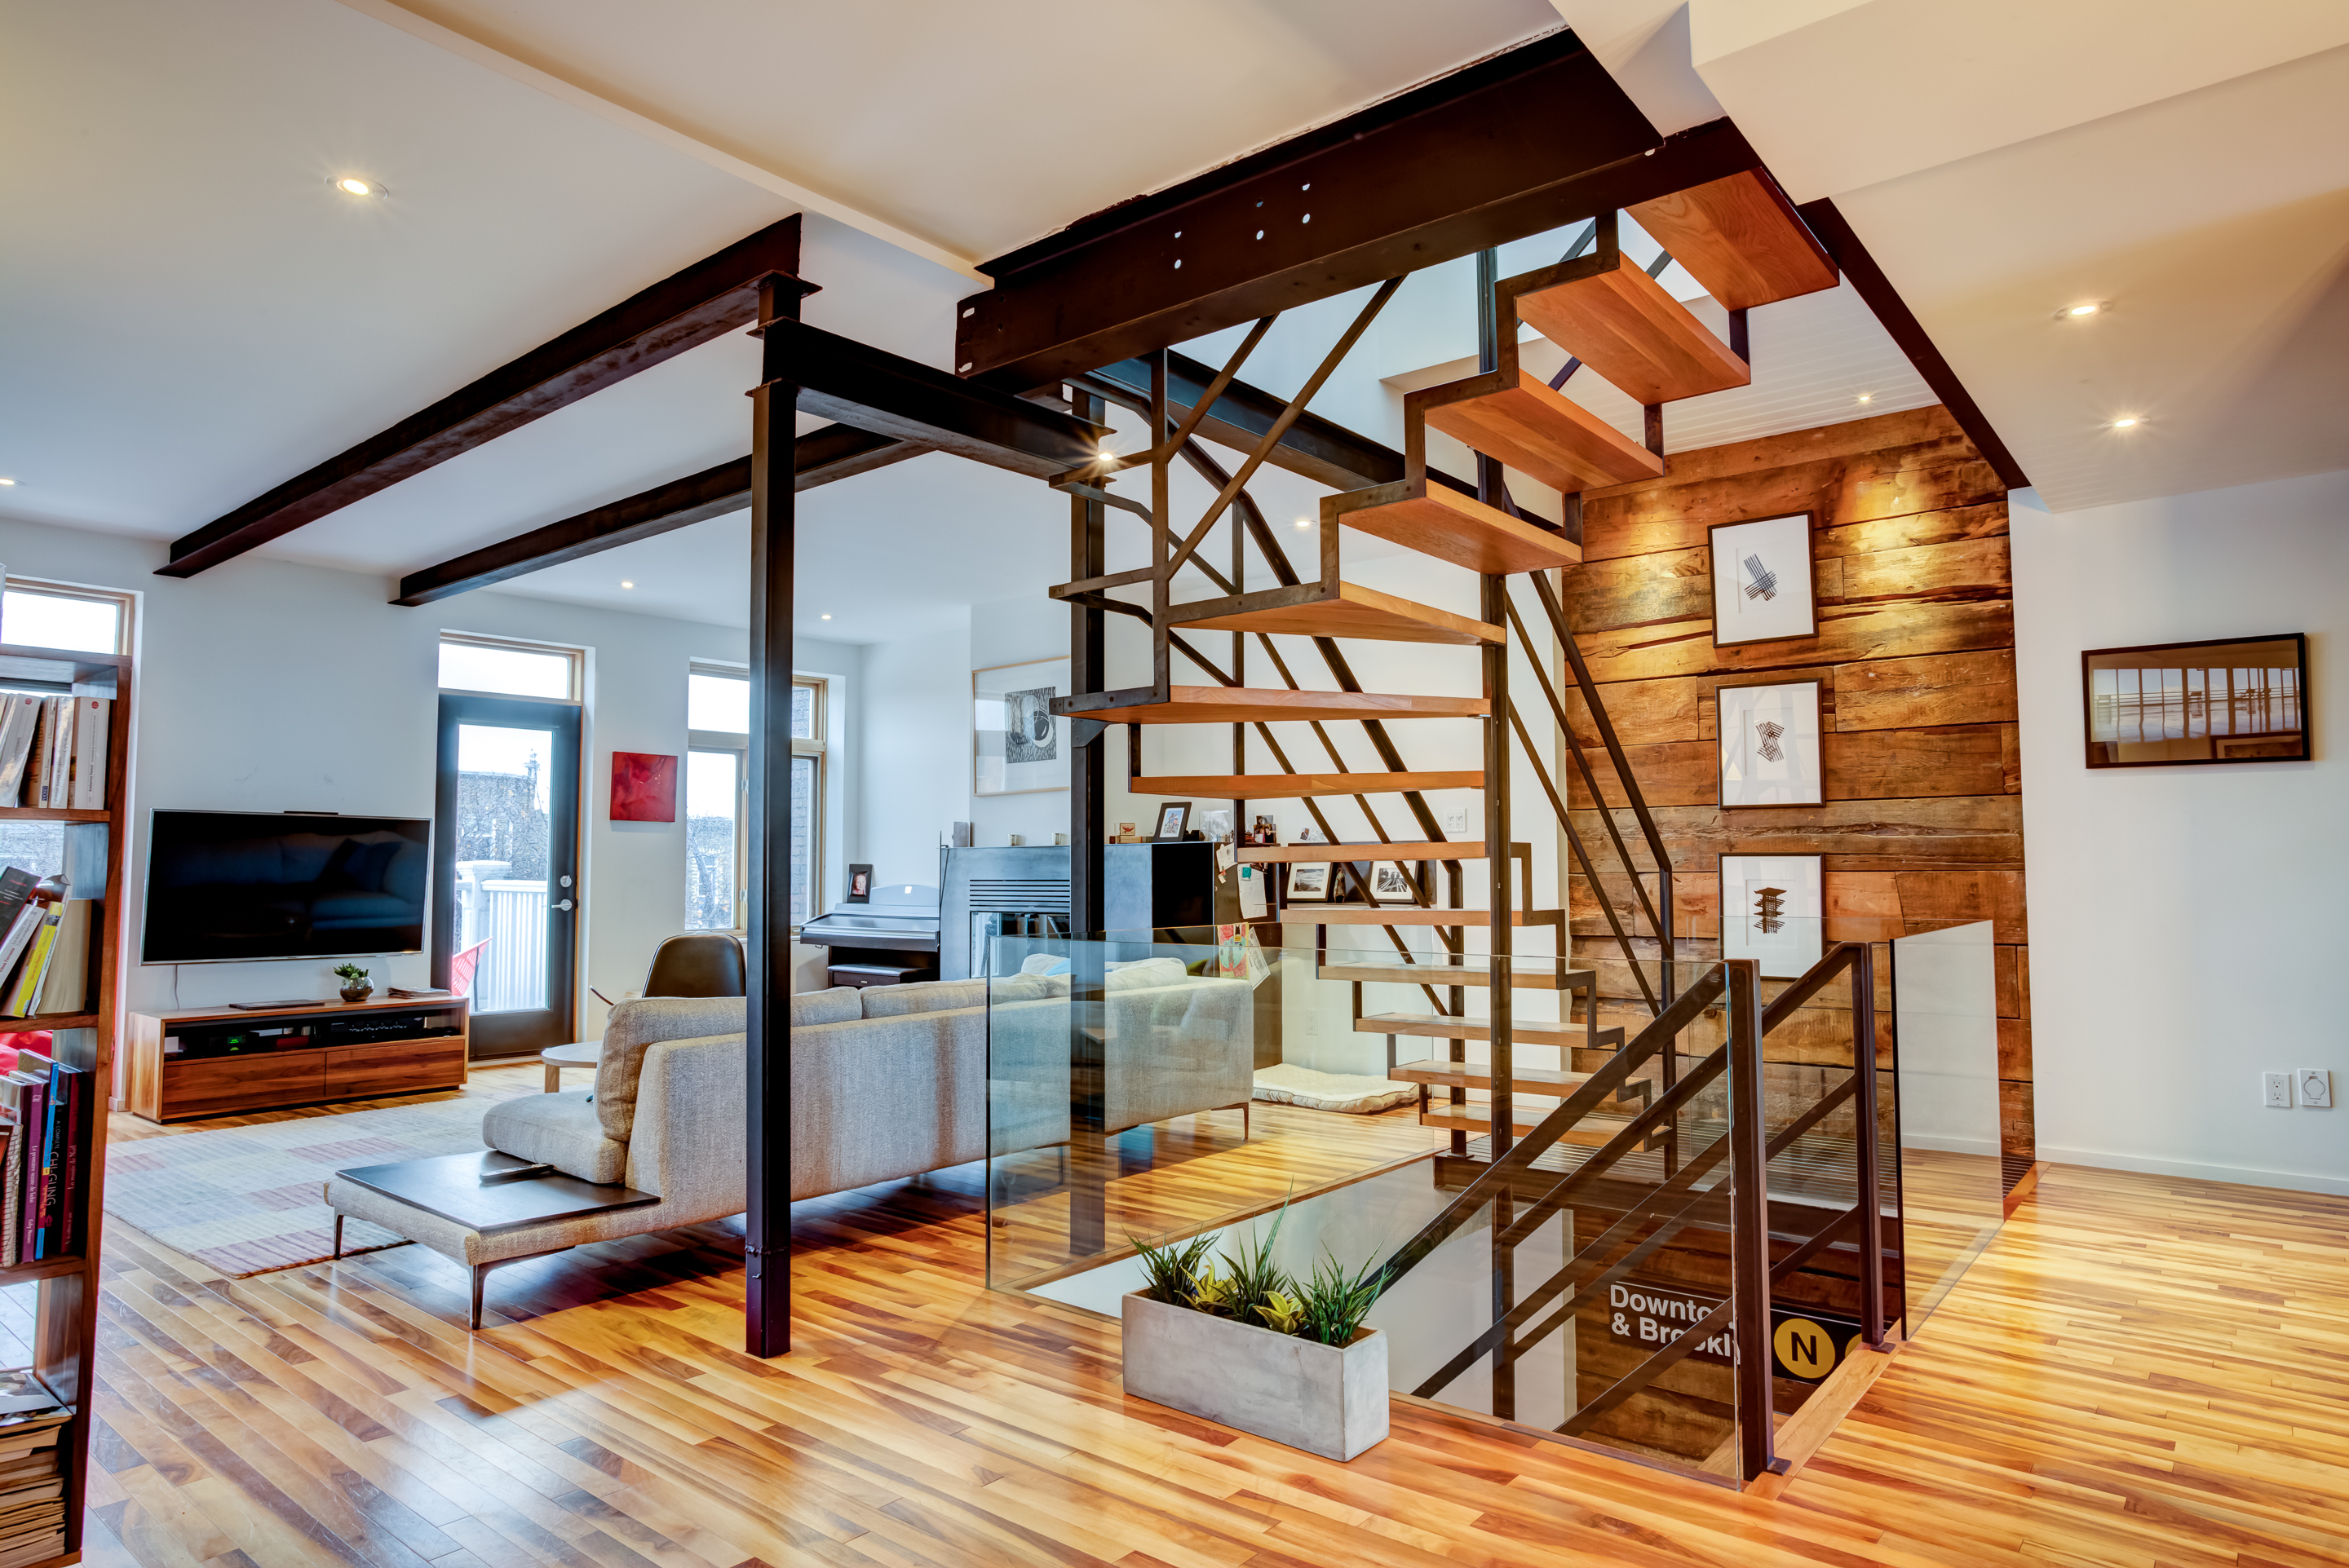 Construction of a wooden staircase with bright living room and raw beams